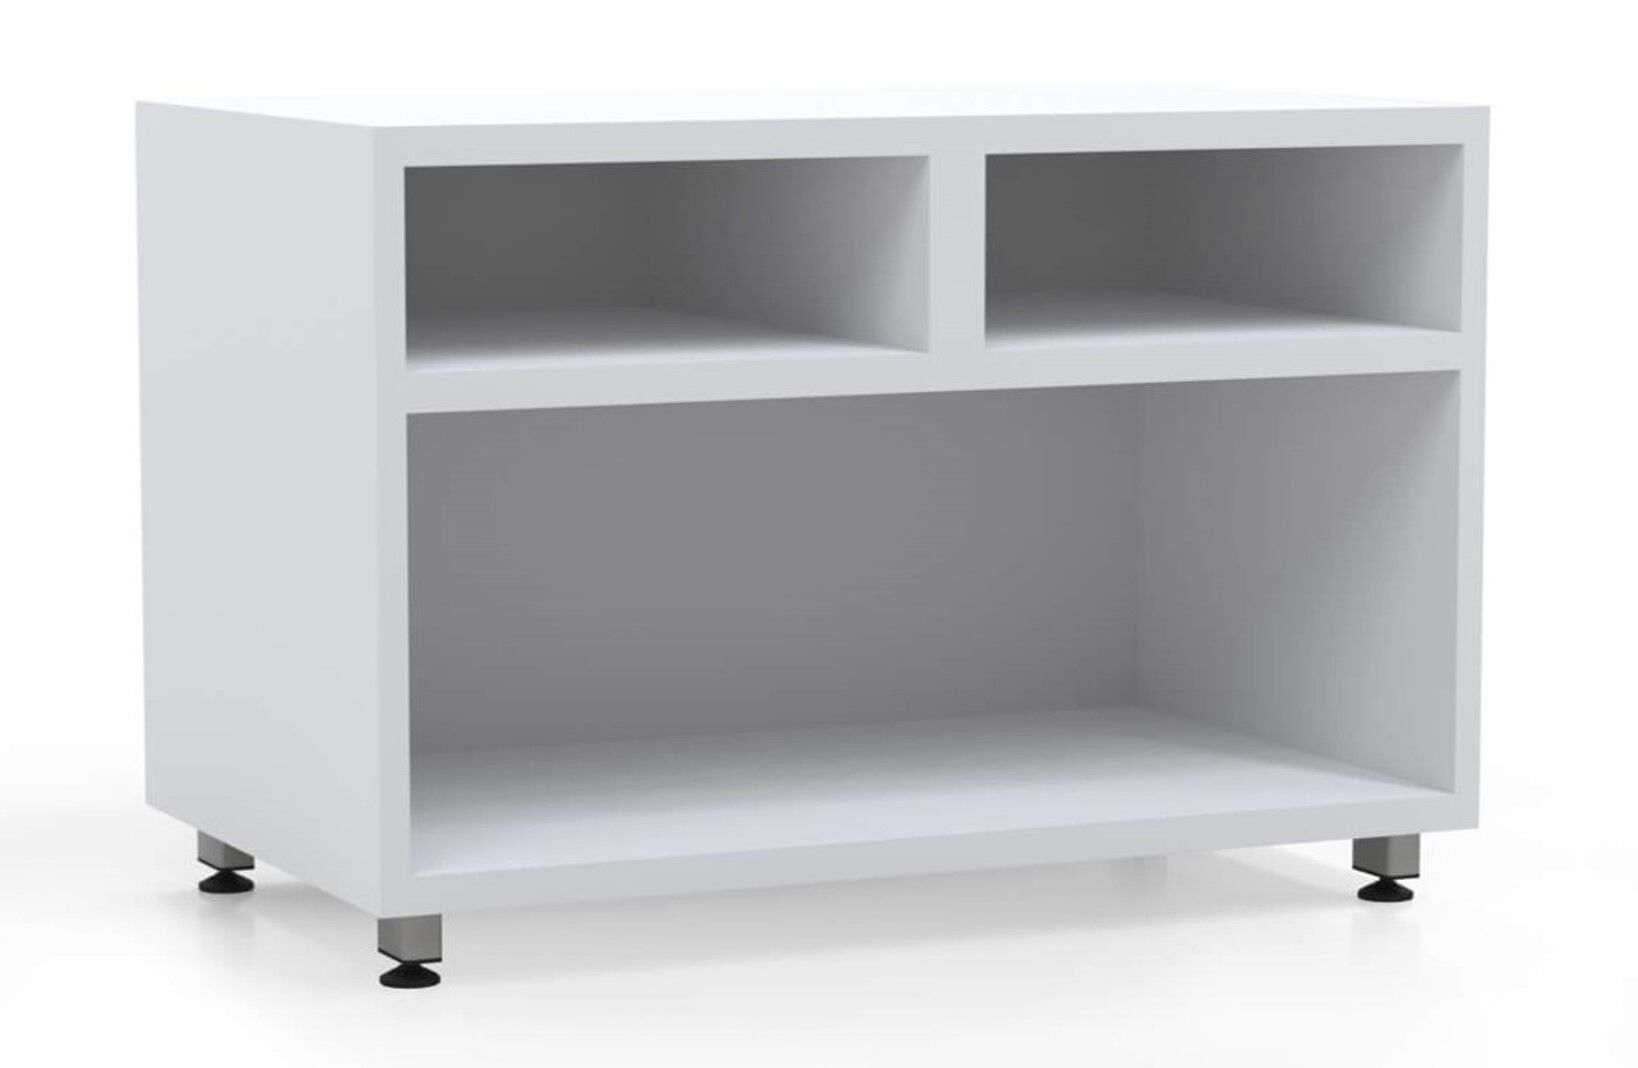 L shaped table desk open storage container white_preview